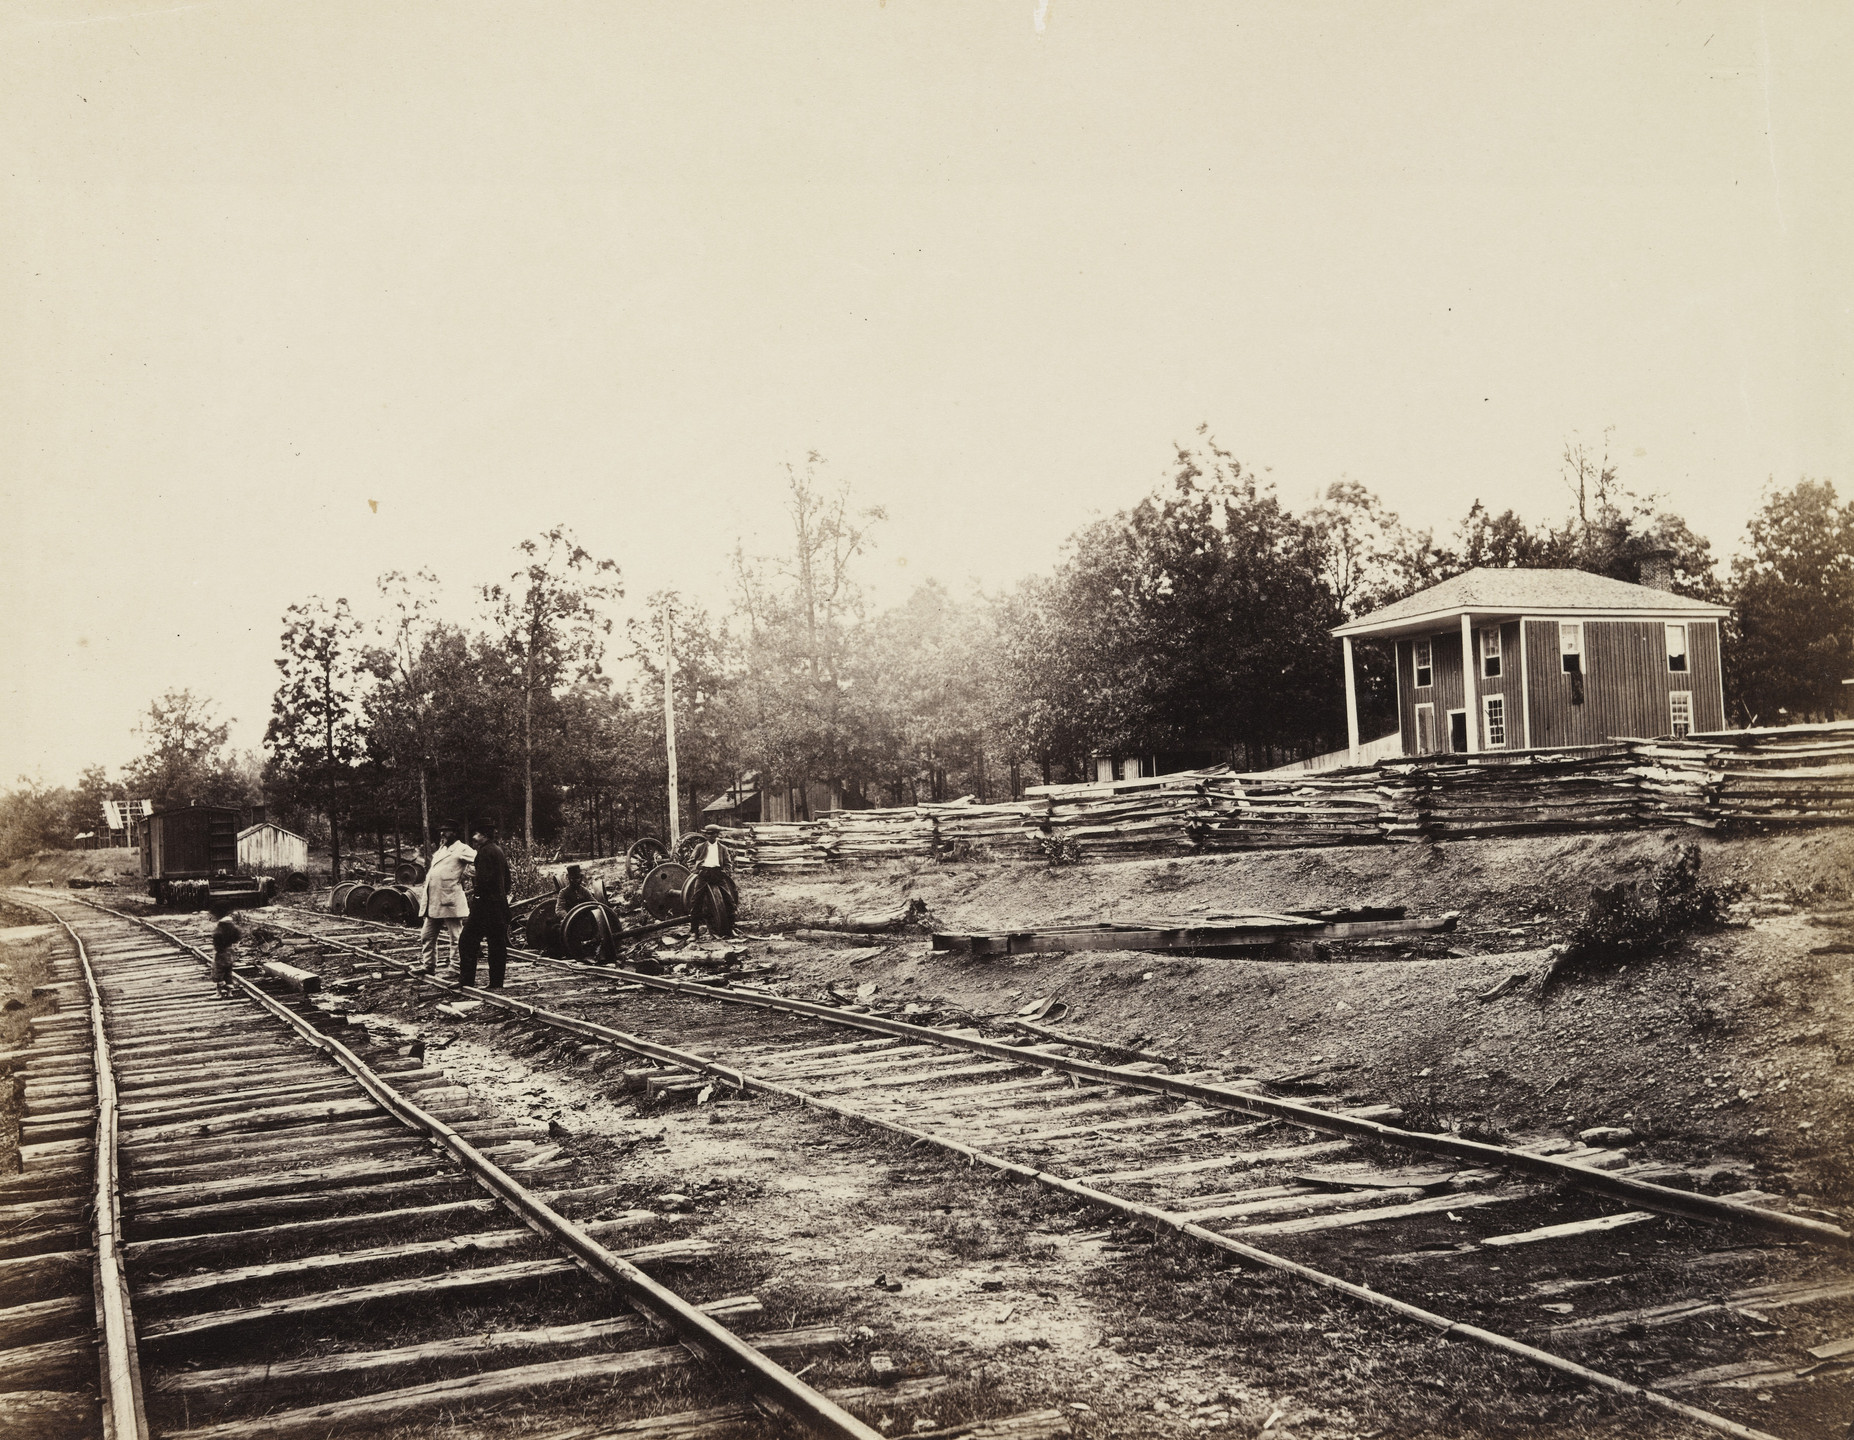 Alexander Gardner, Timothy O'Sullivan. Appomattox Station, Virginia. April, 1865